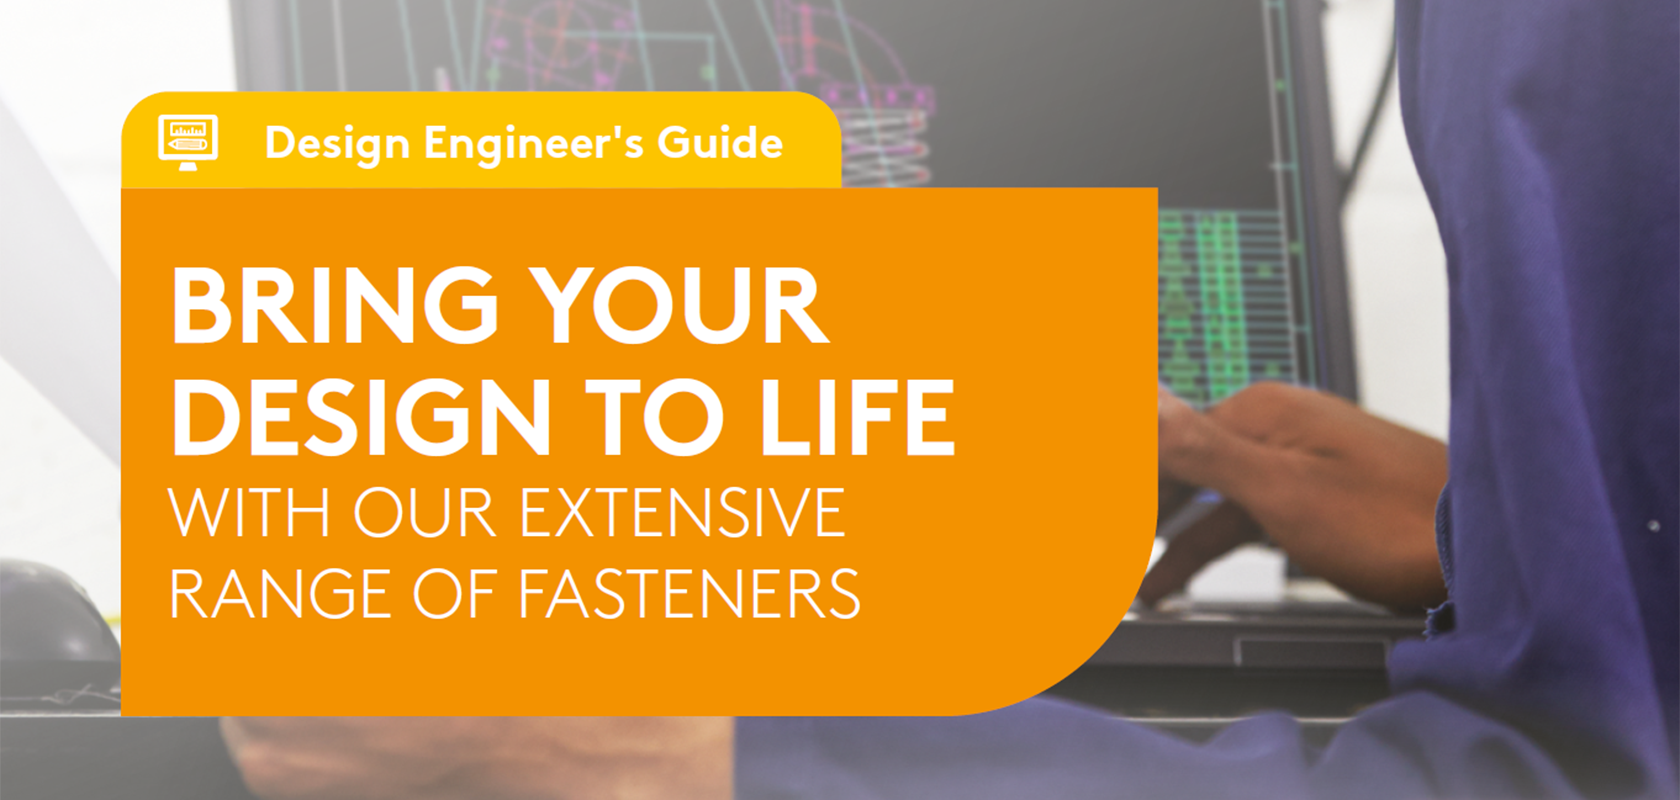 Fasteners - The Design Engineer's Application Guide